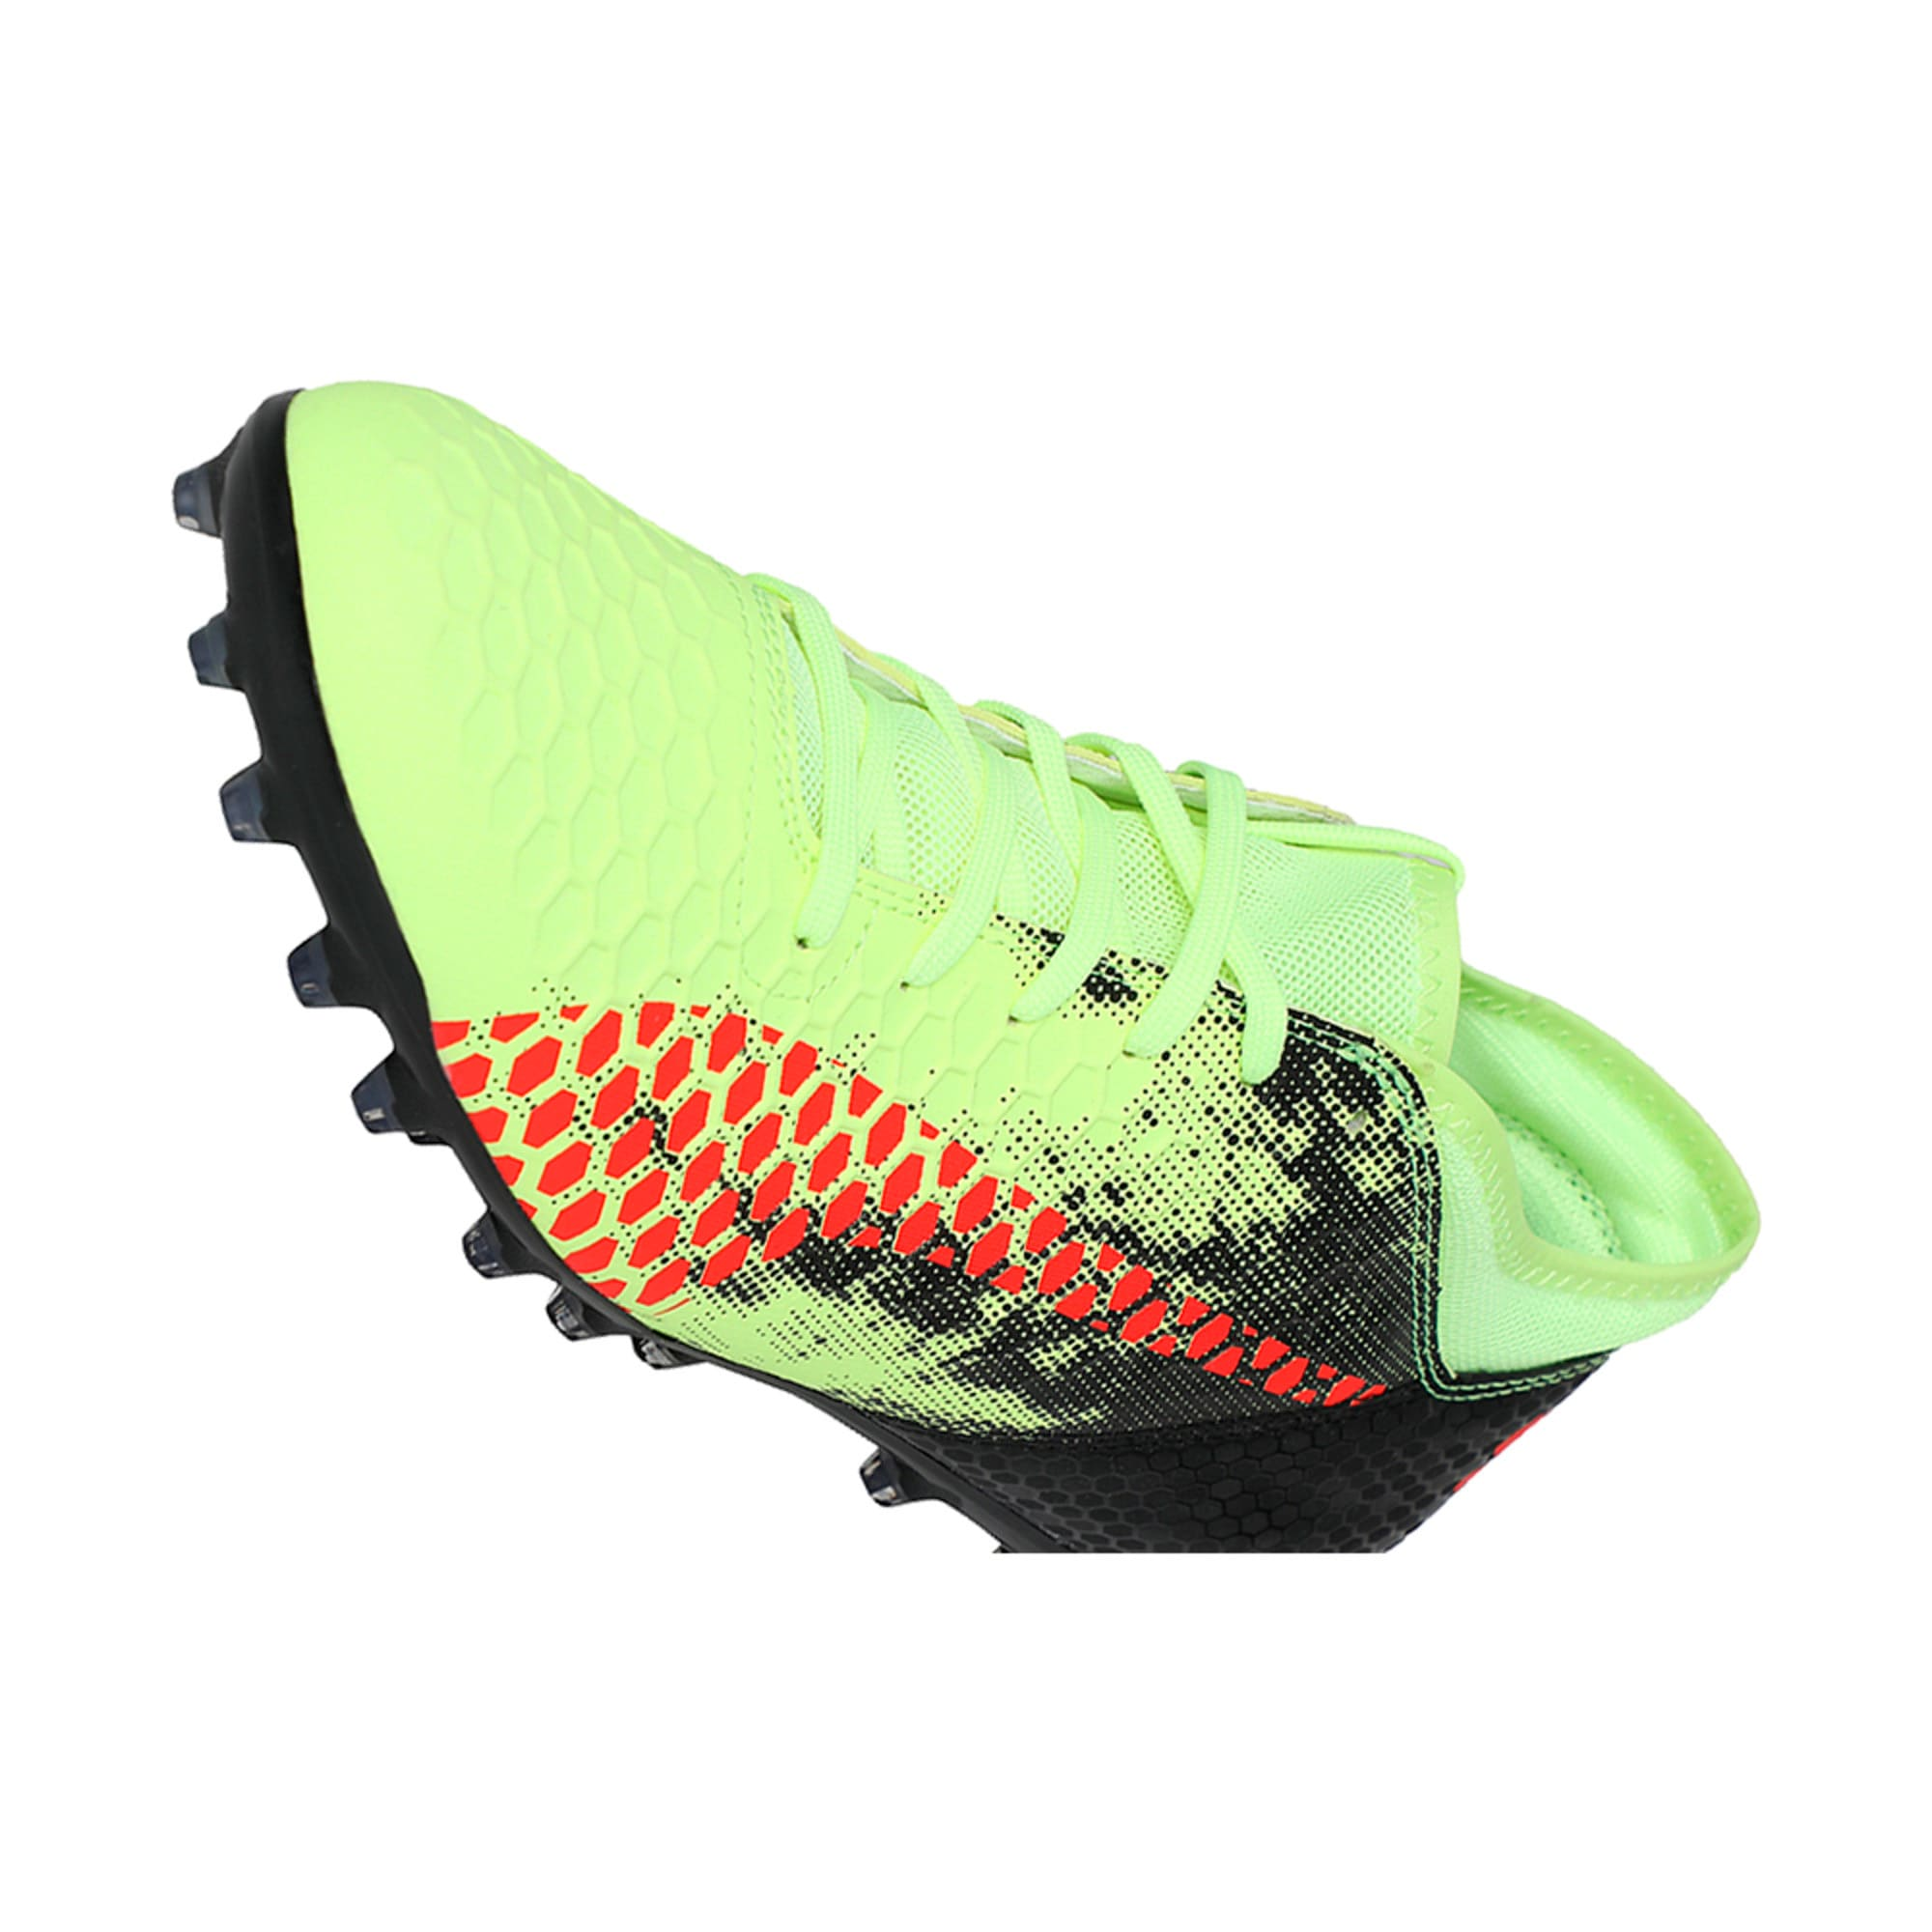 Thumbnail 6 of FUTURE 18.4 MG Men's Football Boots, Yellow-Red-Black, medium-IND